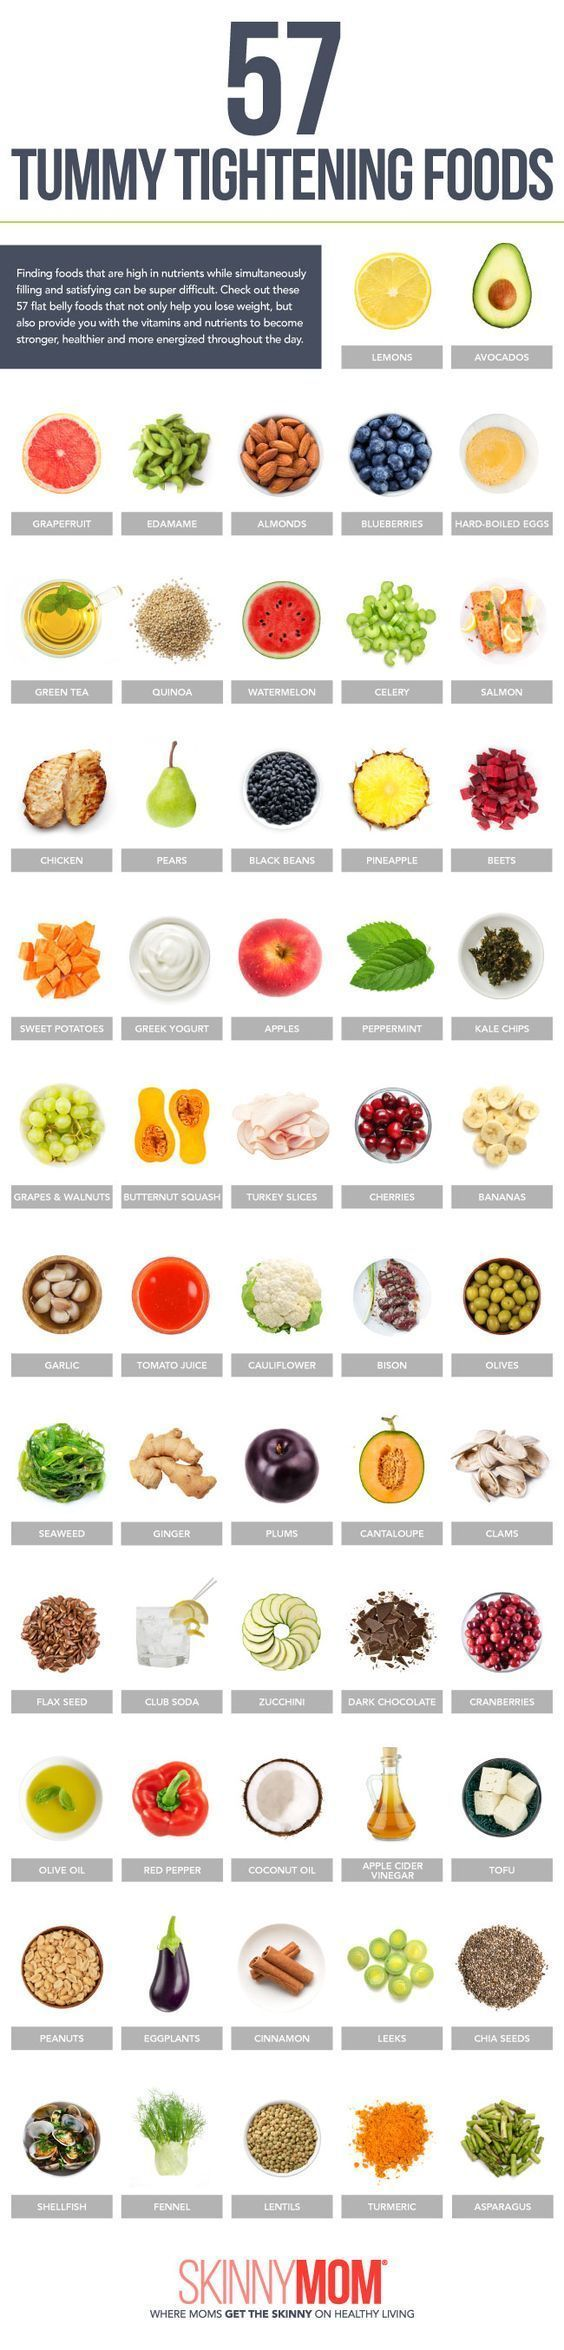 The power of healthy foods nutrition tips snacks weight loss eat these 57 tummy tightening foods every day ccuart Choice Image